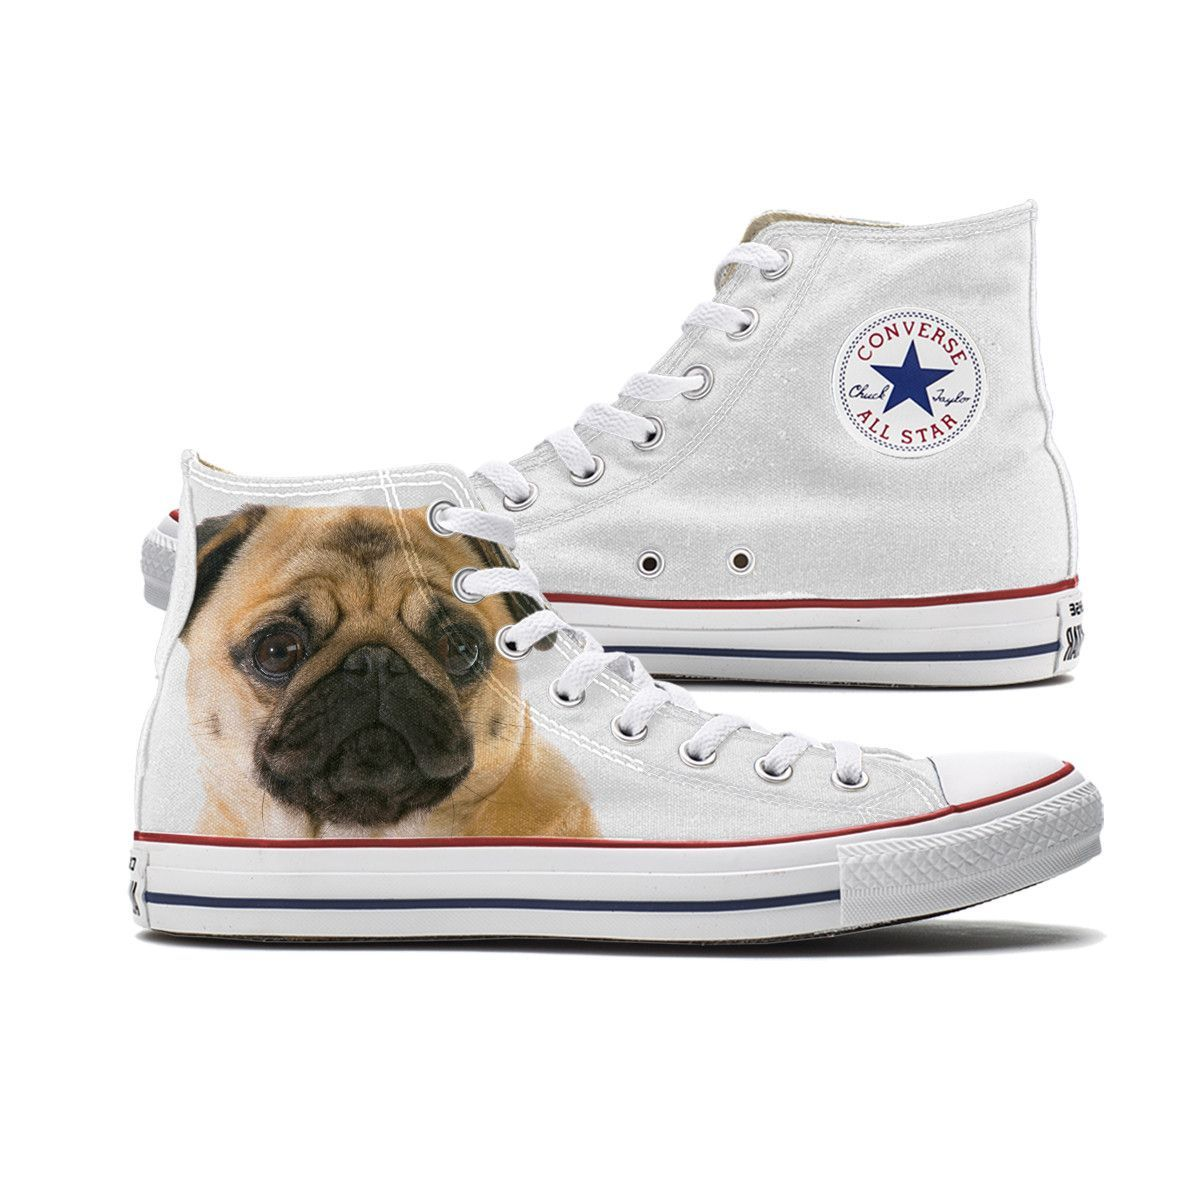 You Will Receive Many Pugs Women's Casual Shoes Flat Customize Cute Original